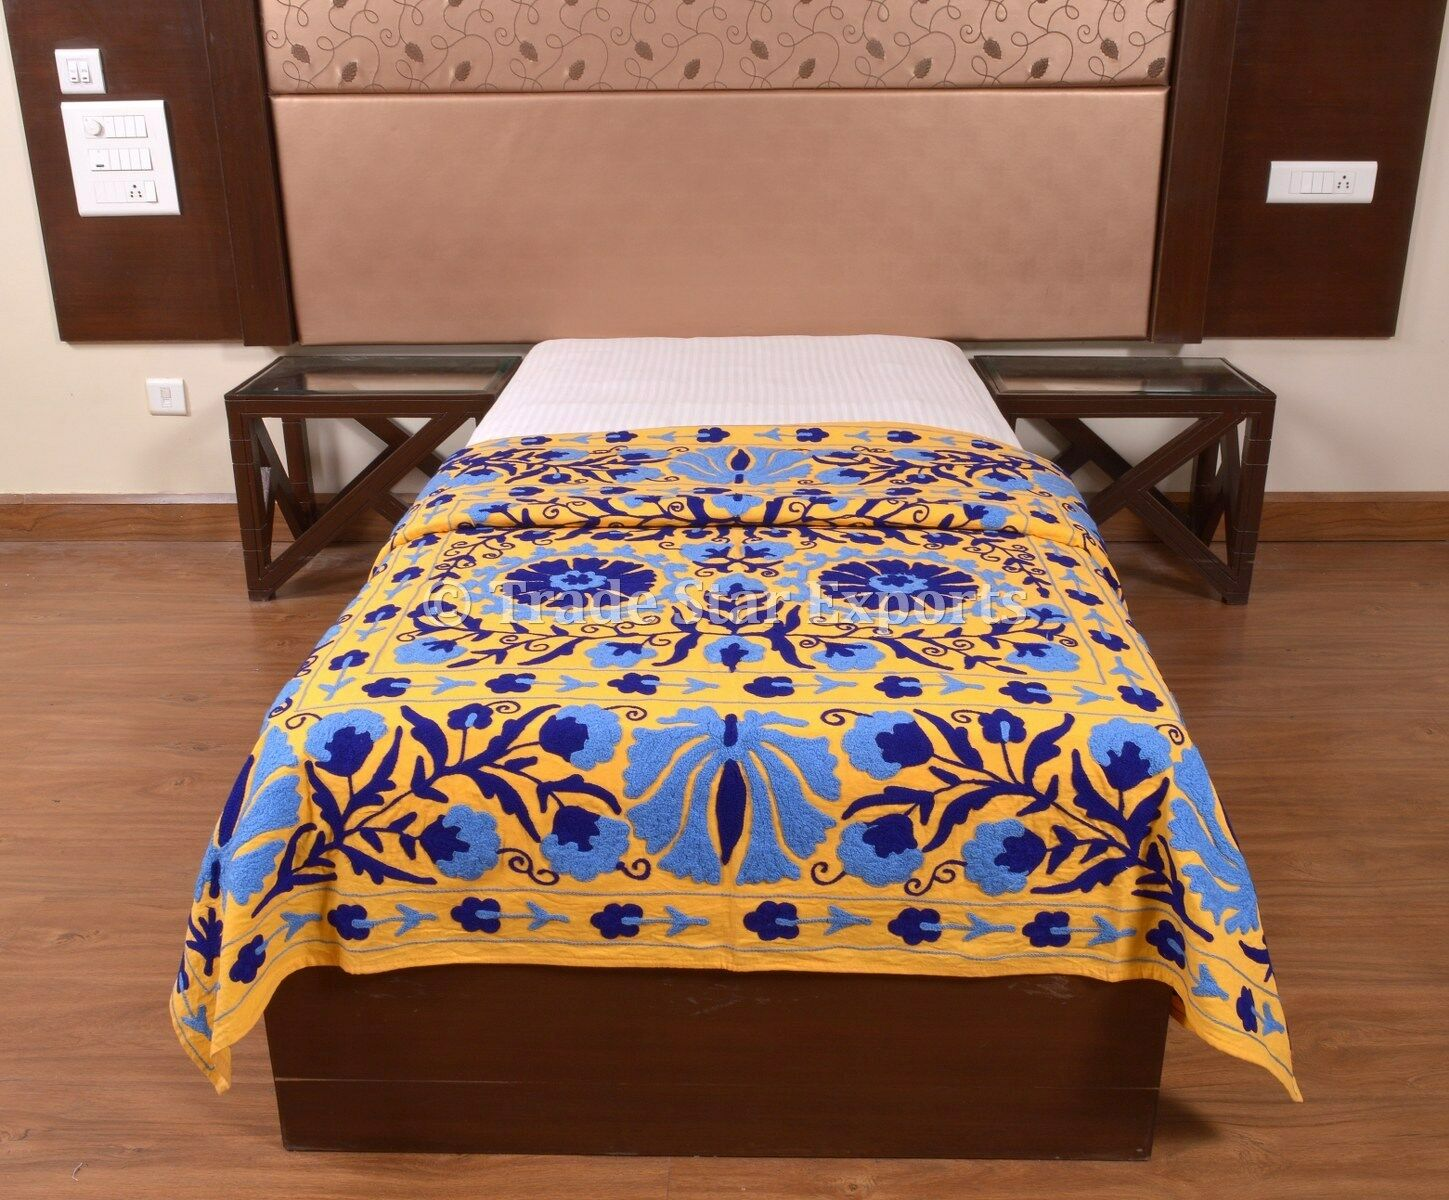 Indian Suzani Embroidered Bedspread Decorative Wall Hanging Boho Cotton Bedding